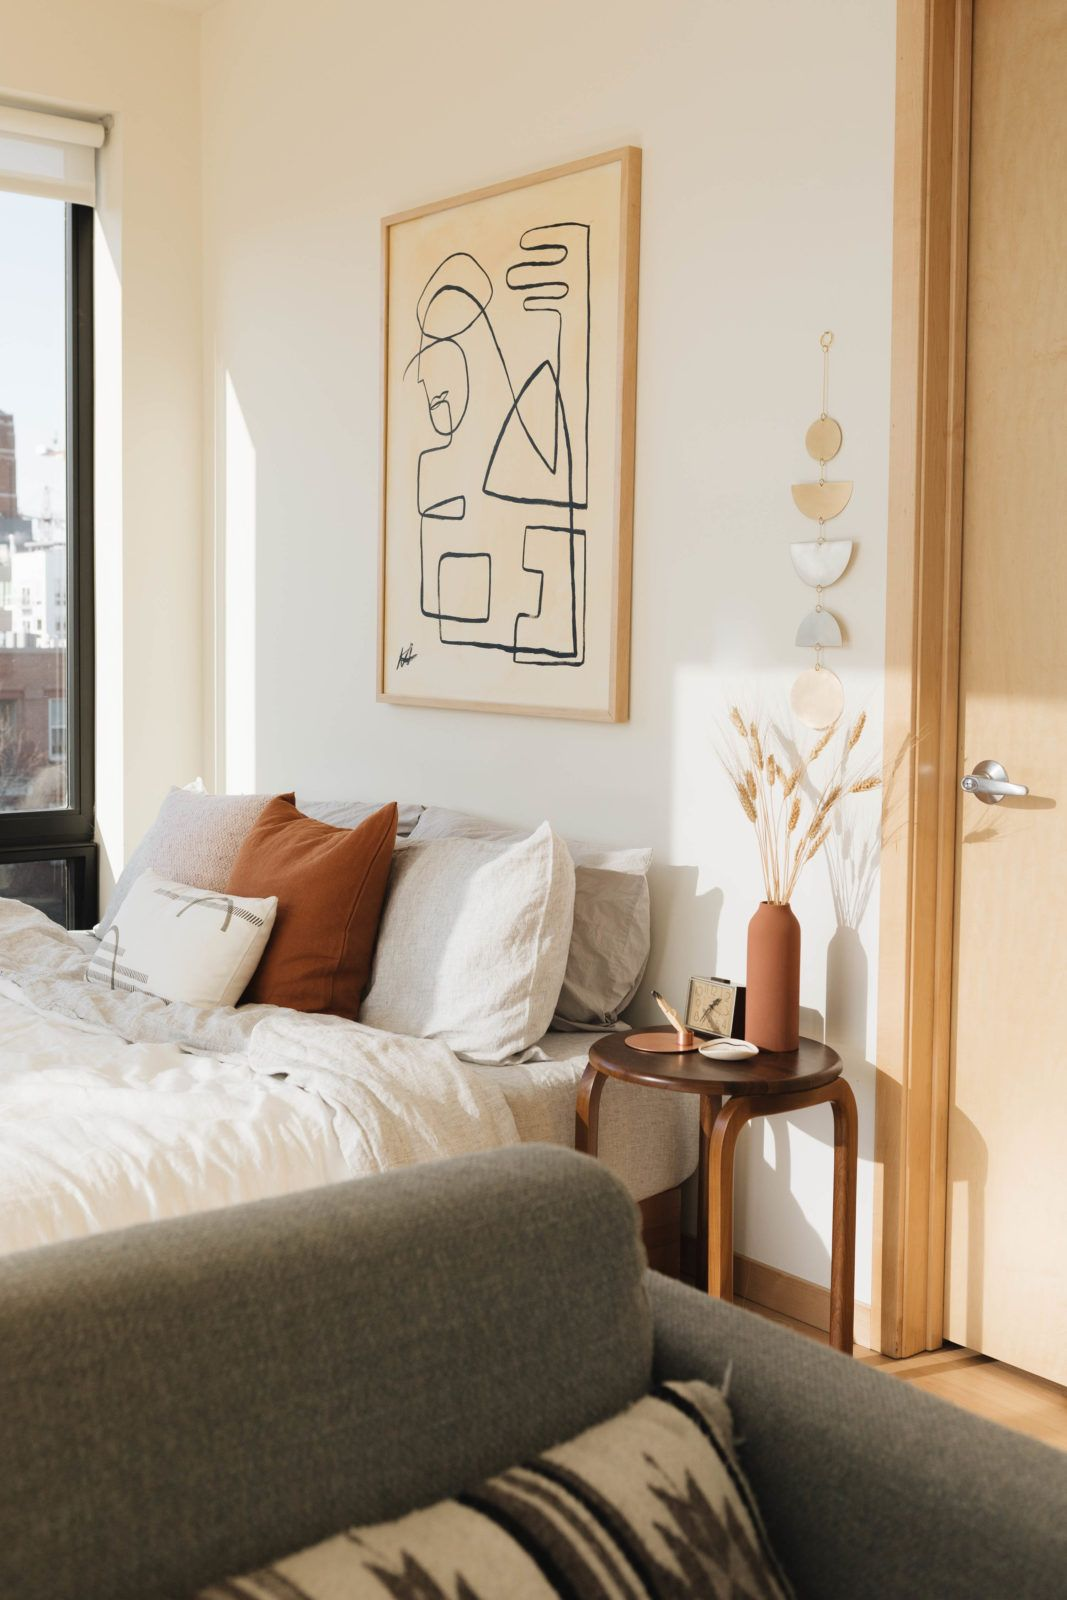 Sleep Challenge Accepted Avec Images Decor Chambre A Coucher